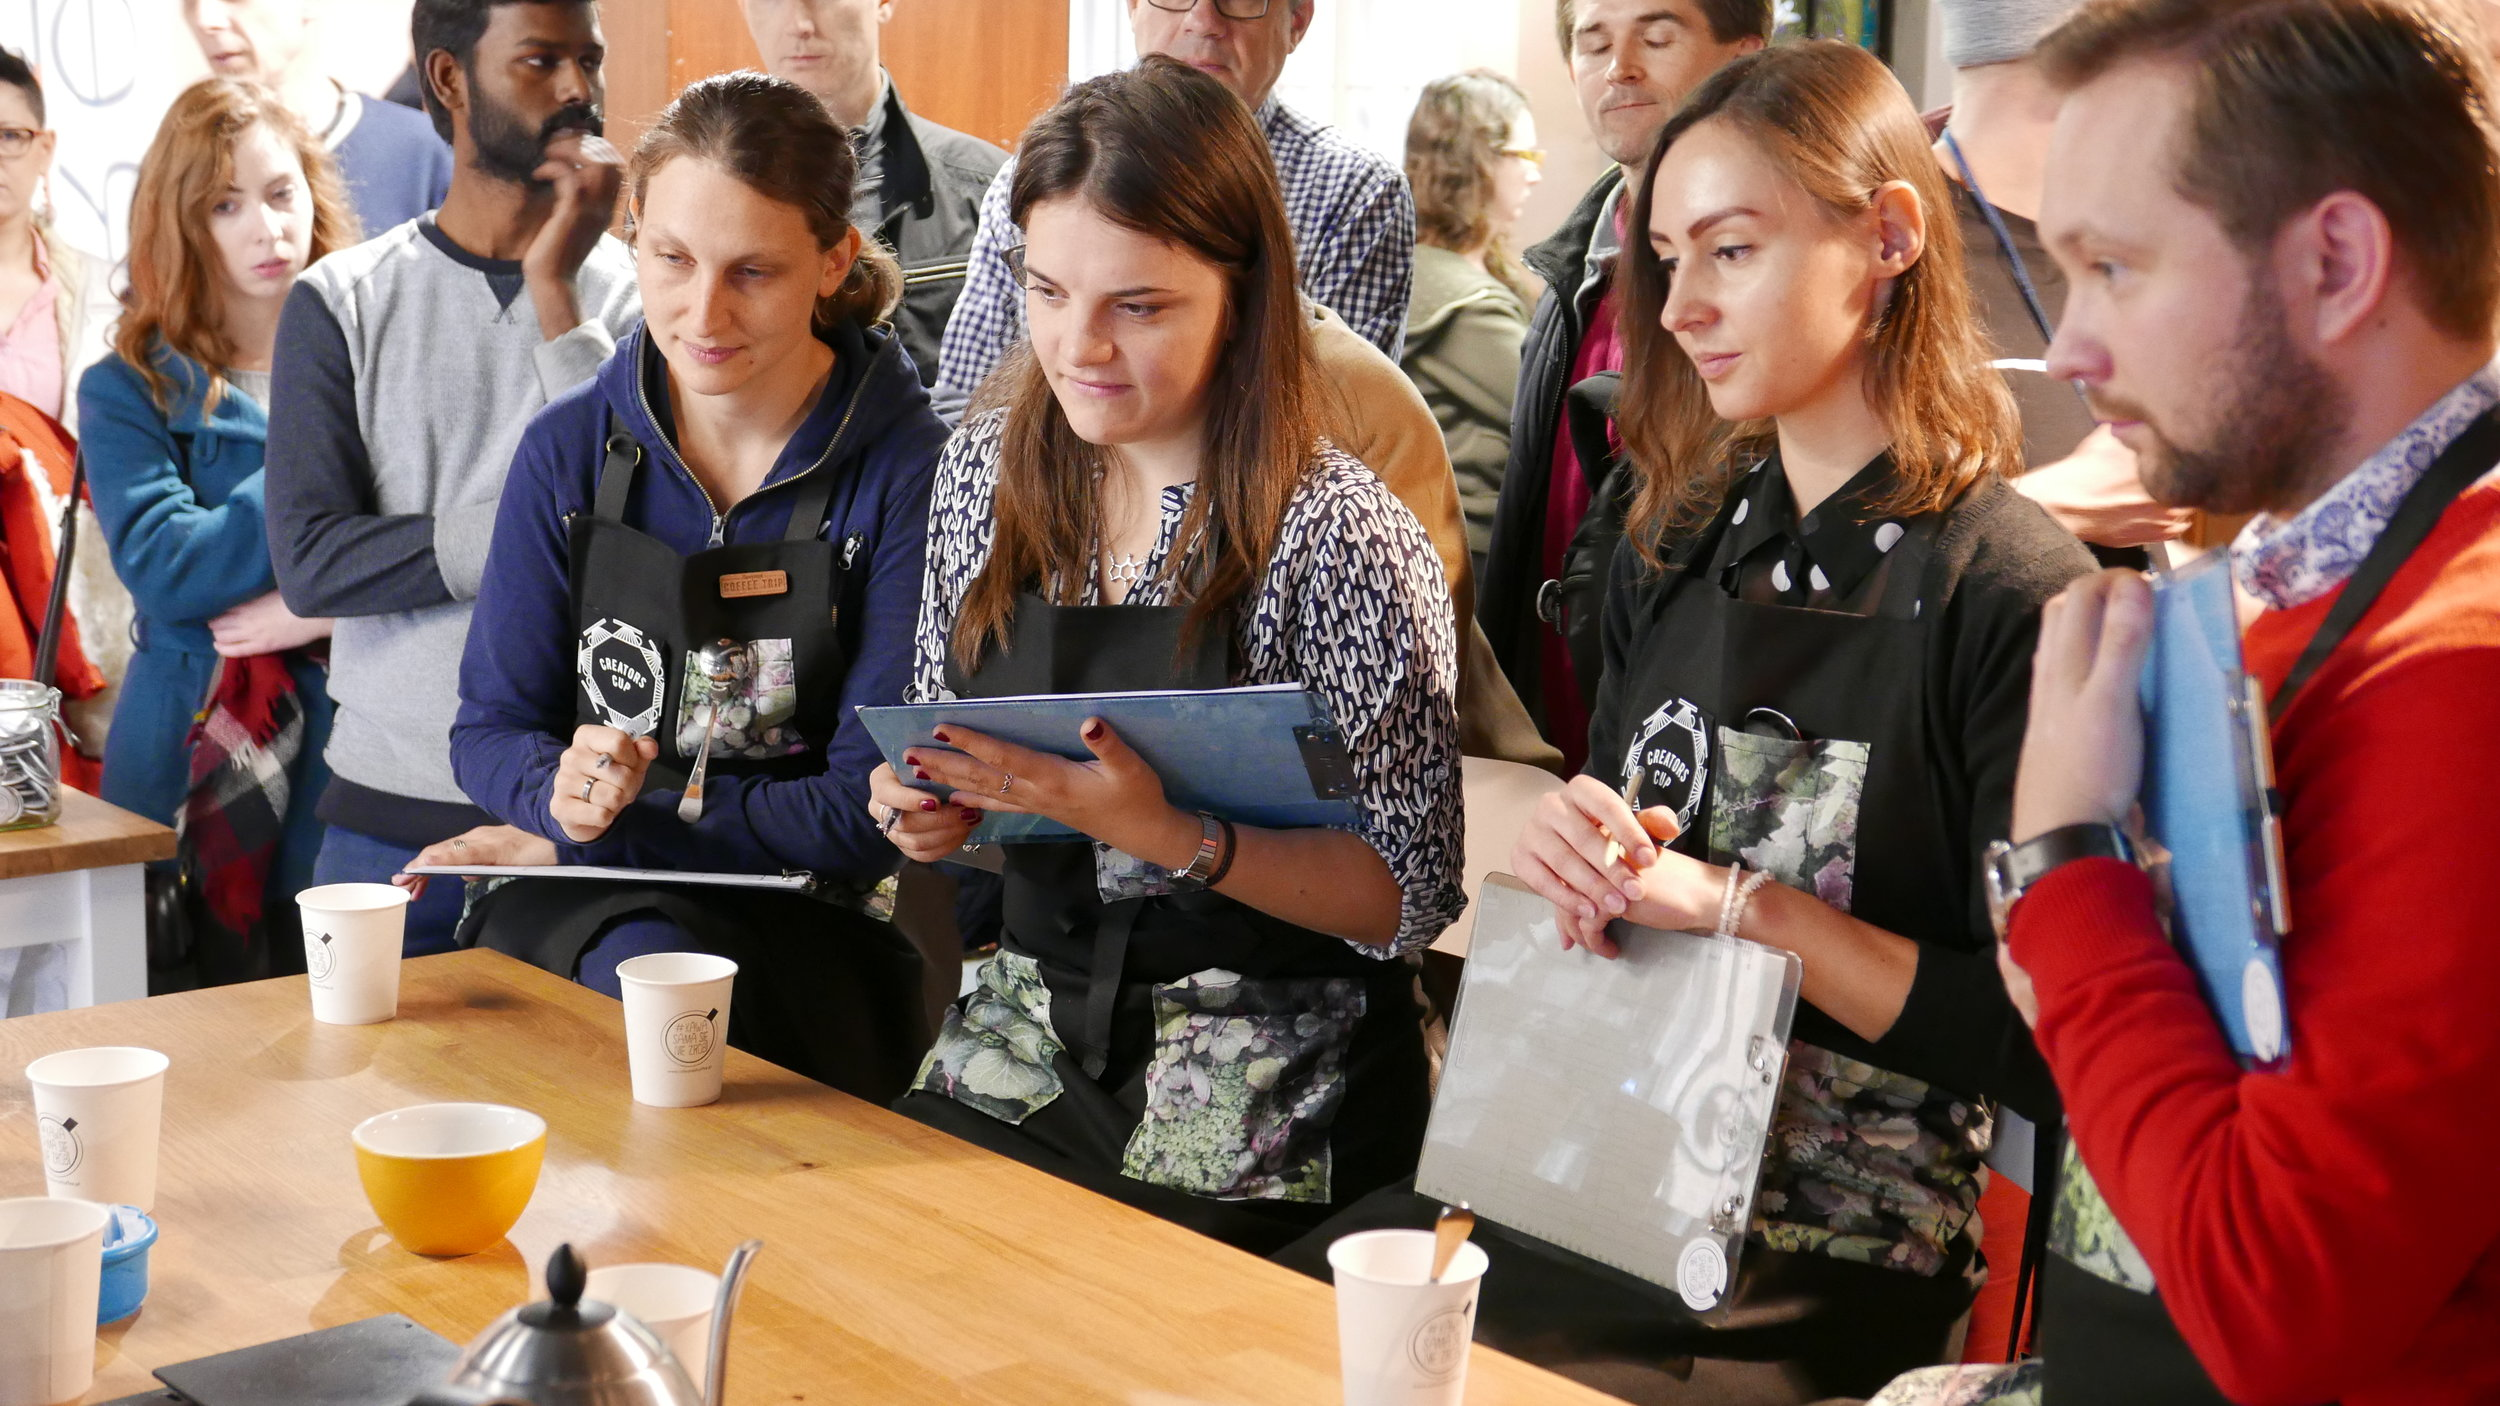 The Judges: Jana (Jane Lash), Belarus. Irina (Mad Espresso Team), Russia. Karolina (Warsaw freelance barista celebrity), Poland. Arek (Story Coffee Roasters), Poland.